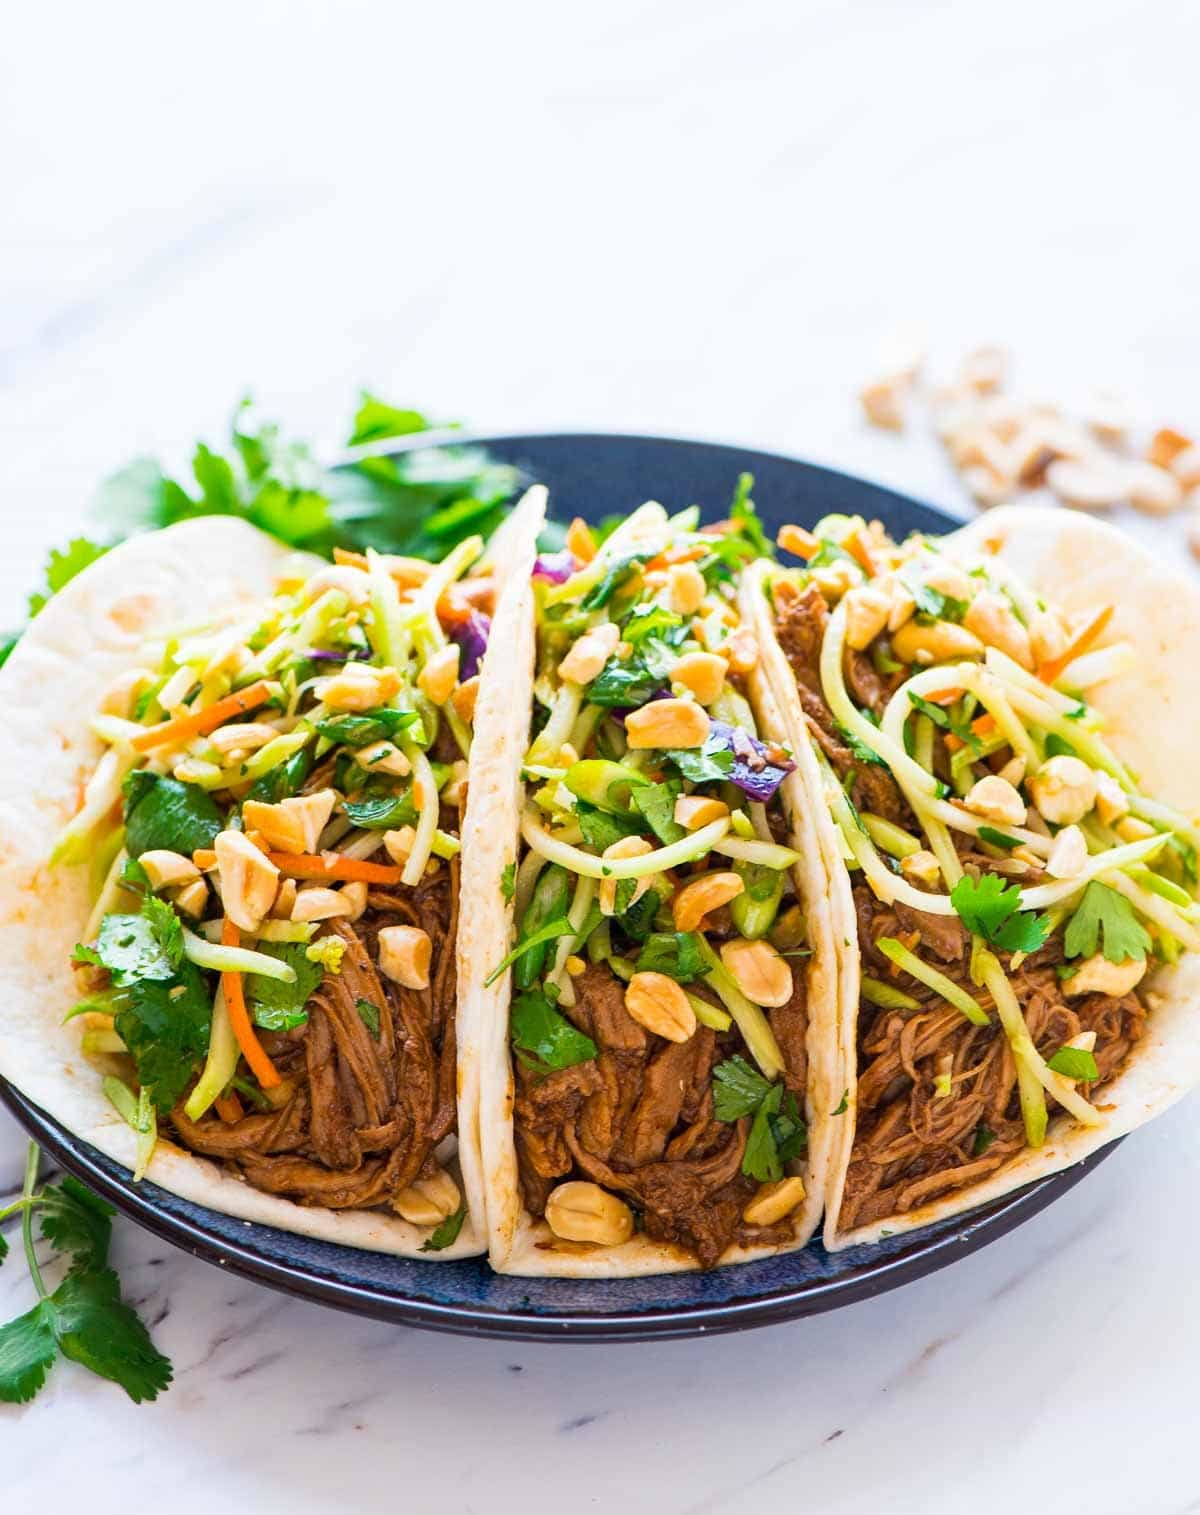 Asian Pulled Pork Tacos topped with crunchy peanut broccoli slaw.